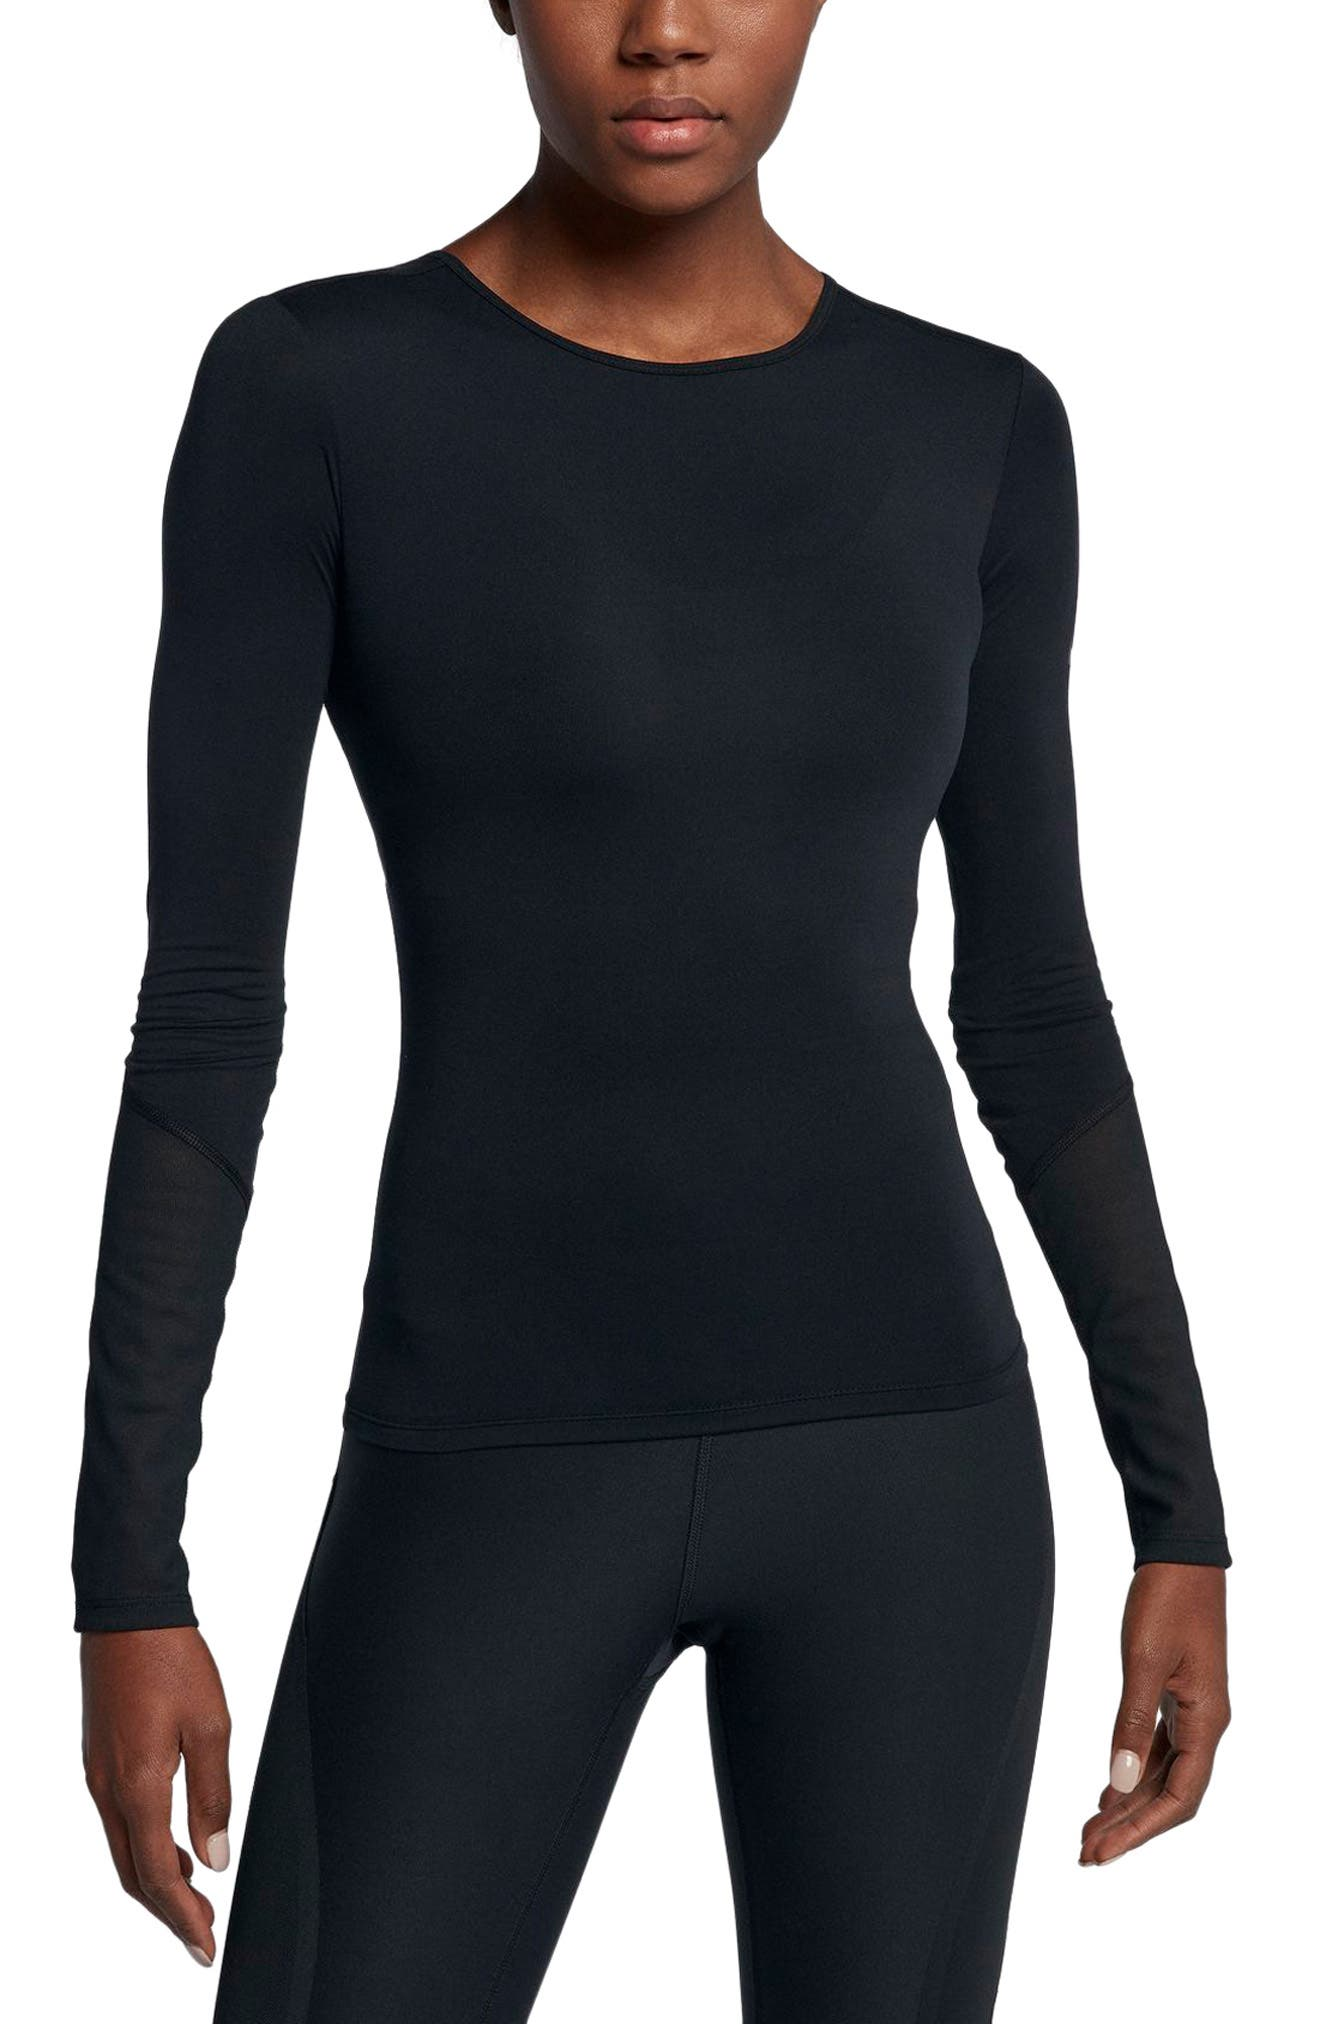 Dry Wrap Training Top,                             Main thumbnail 1, color,                             010